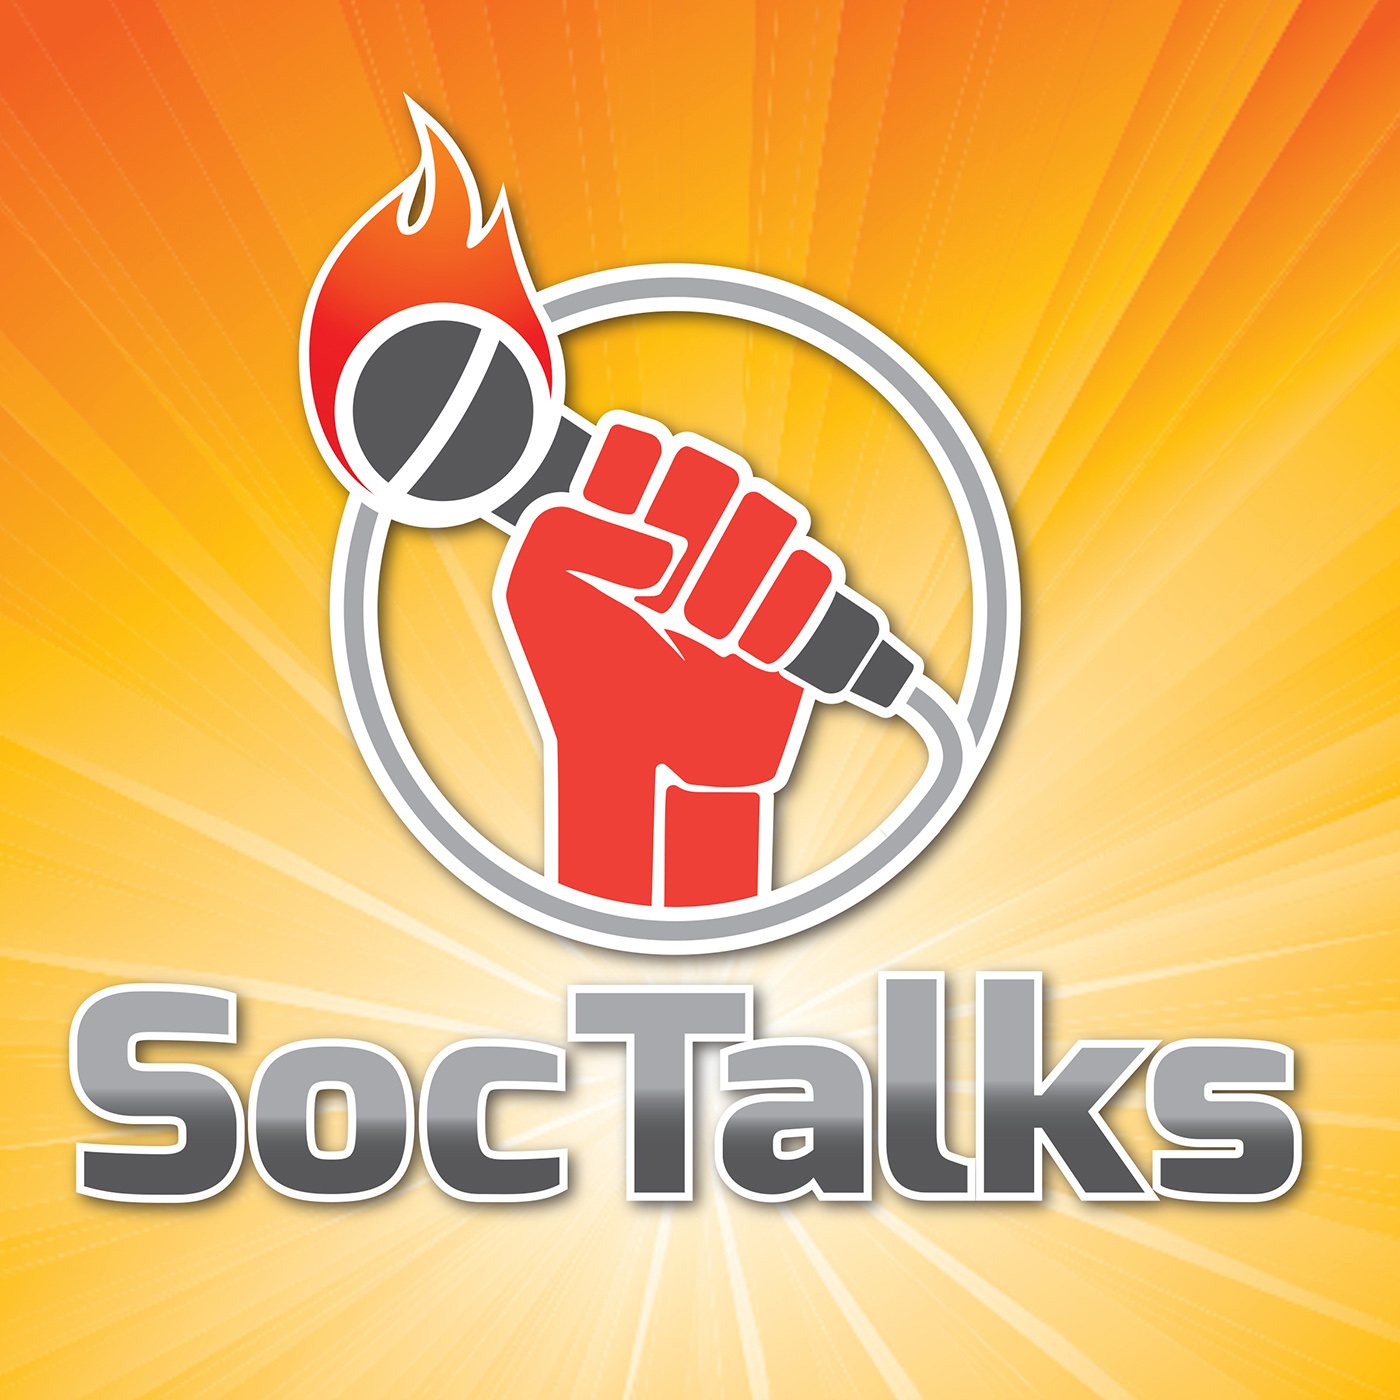 SocTalks Episode 019 show art